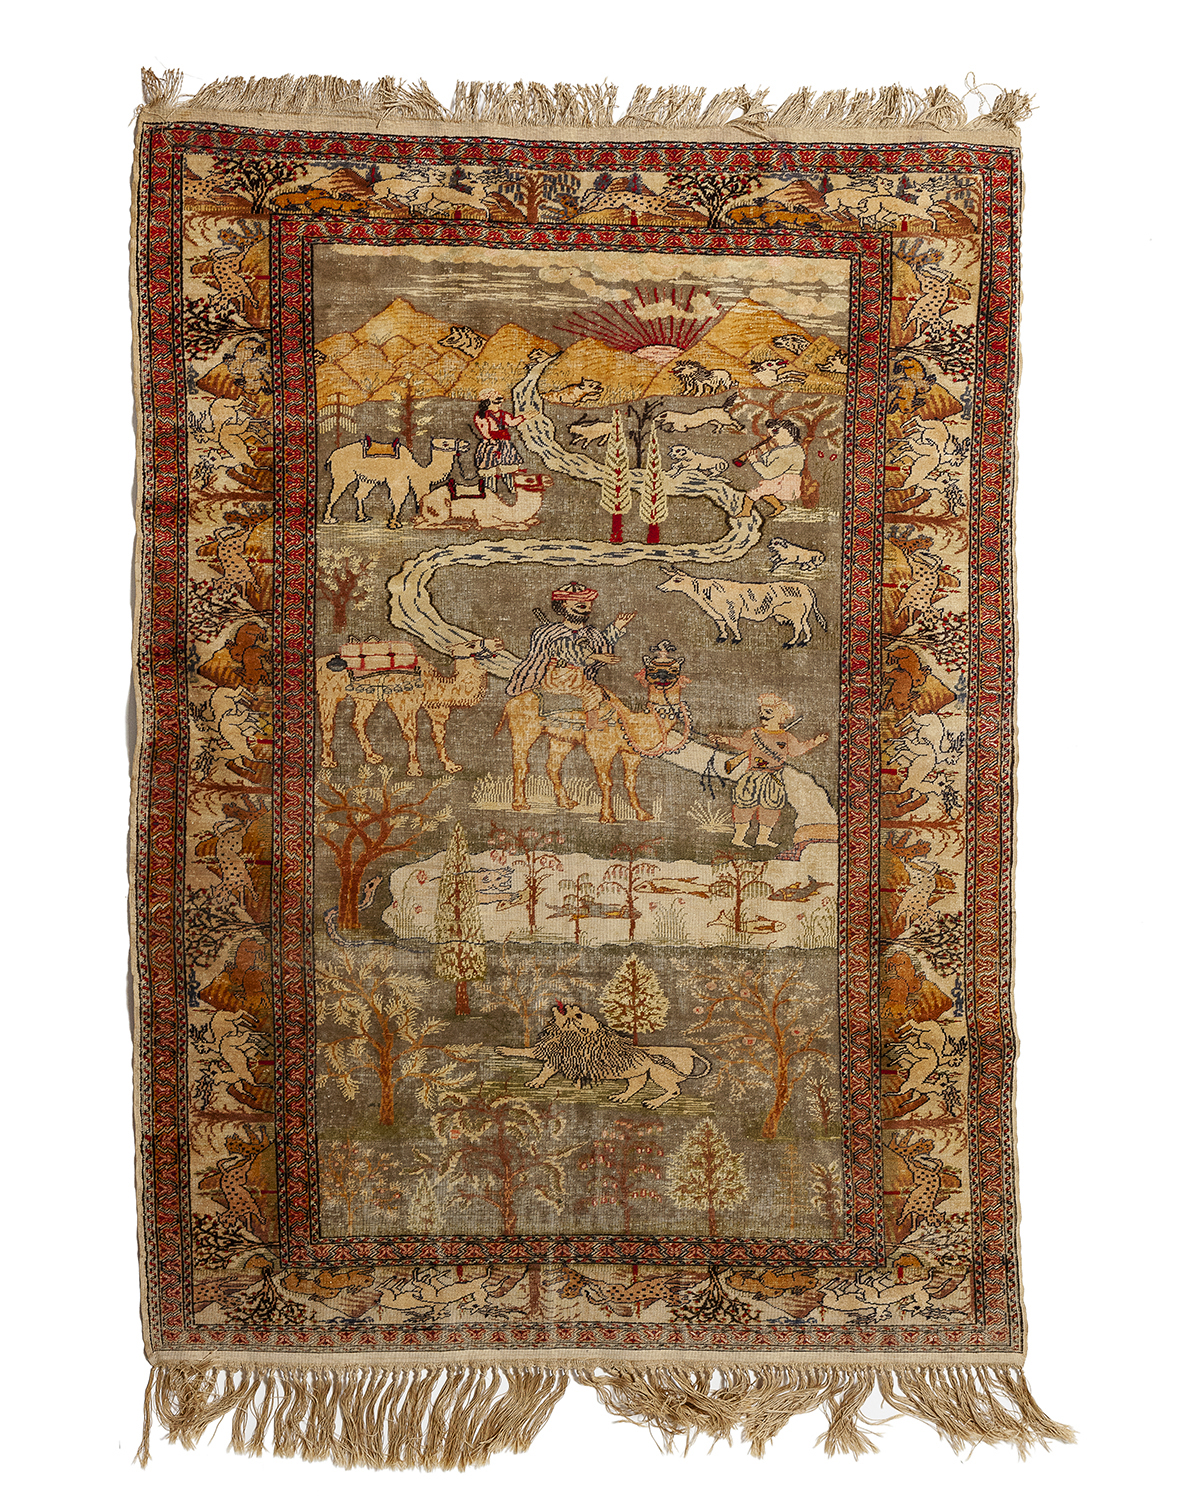 A silk rug with figural motifs